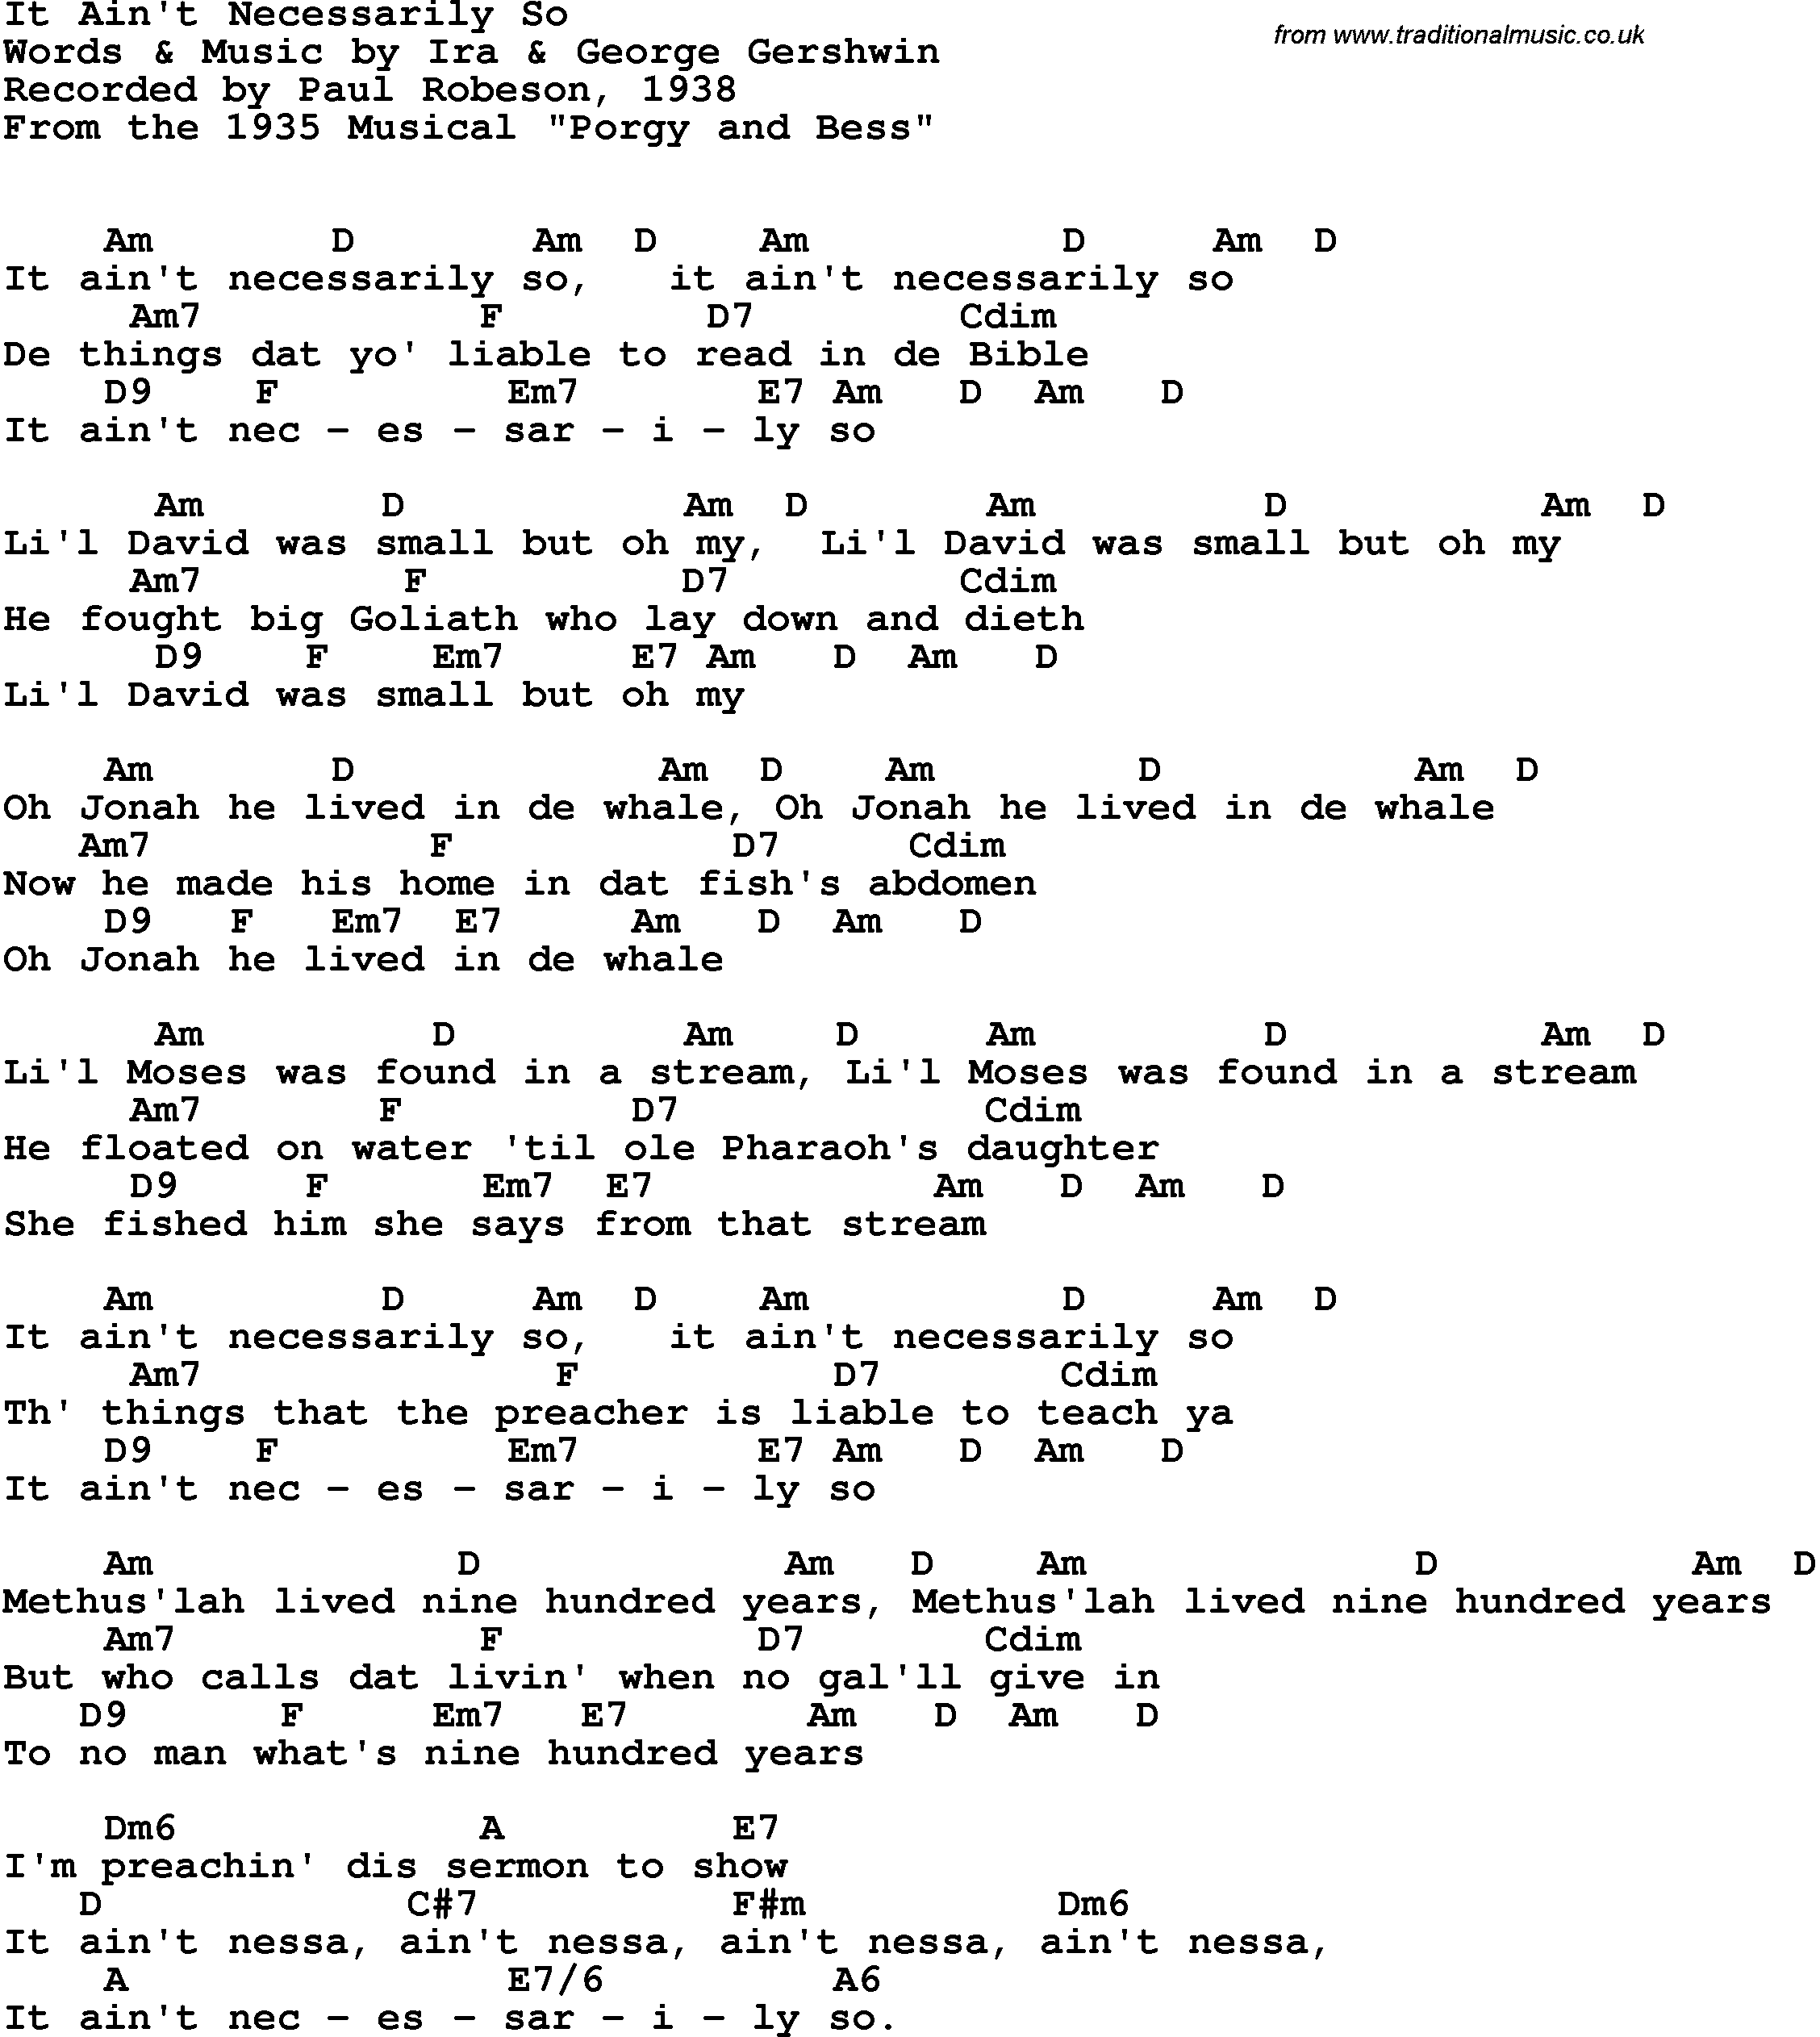 Song Lyrics With Guitar Chords For It Aint Necessarily So Paul